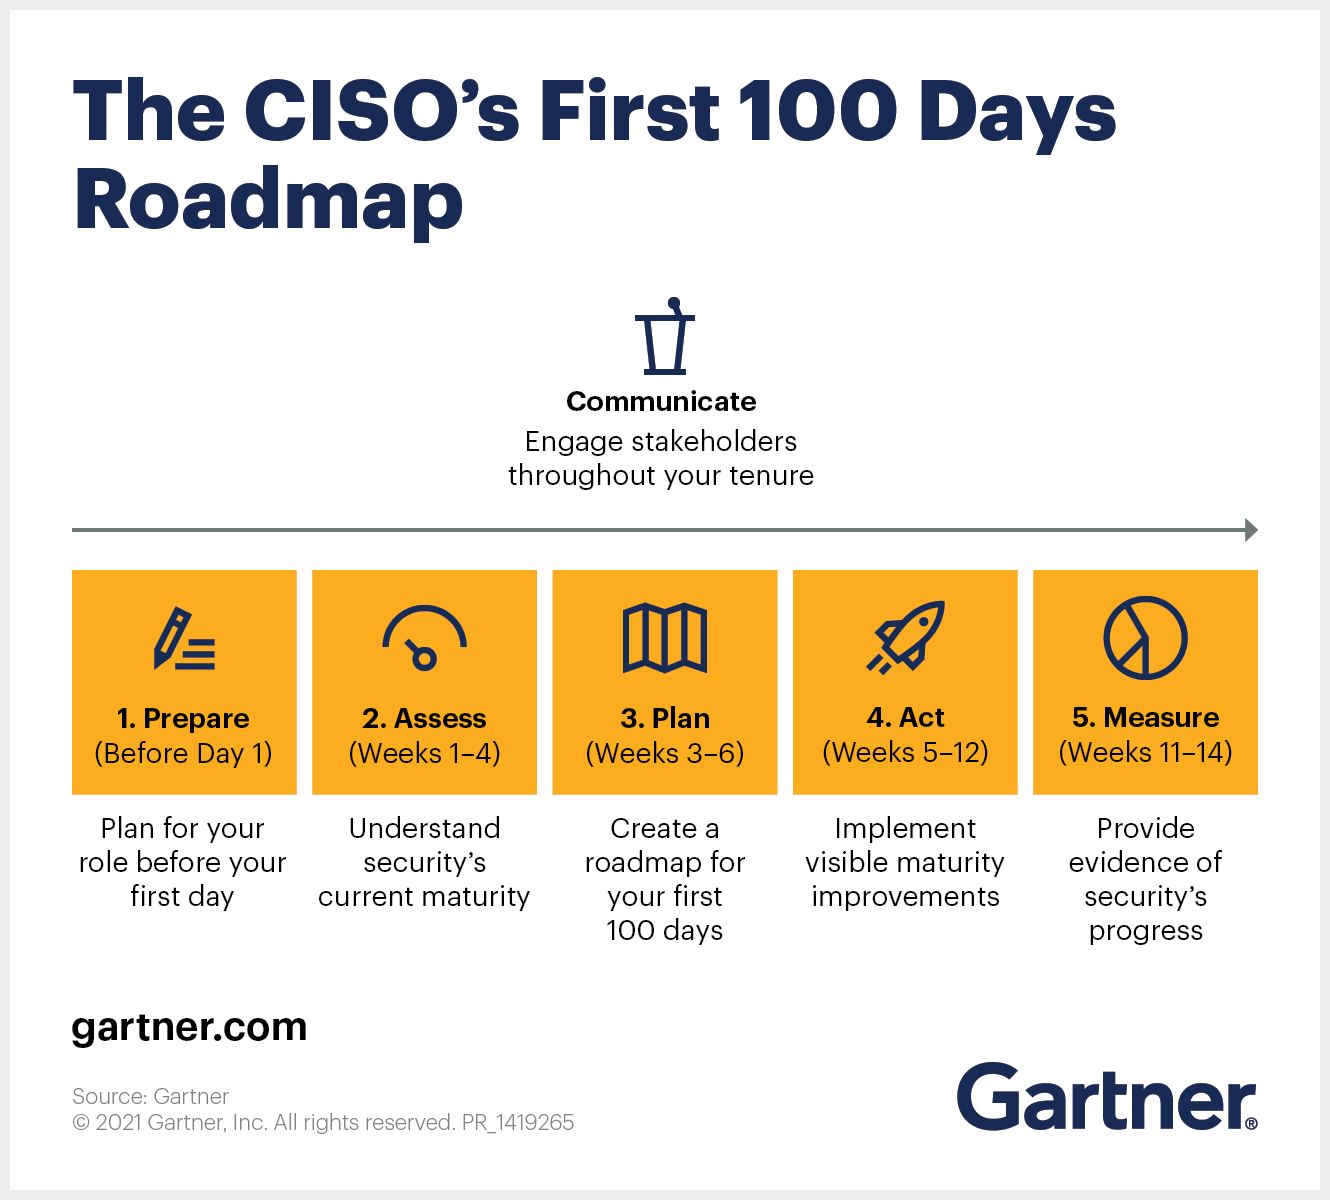 A five-phase roadmap to help the new CISO in their first 100 days in the role.